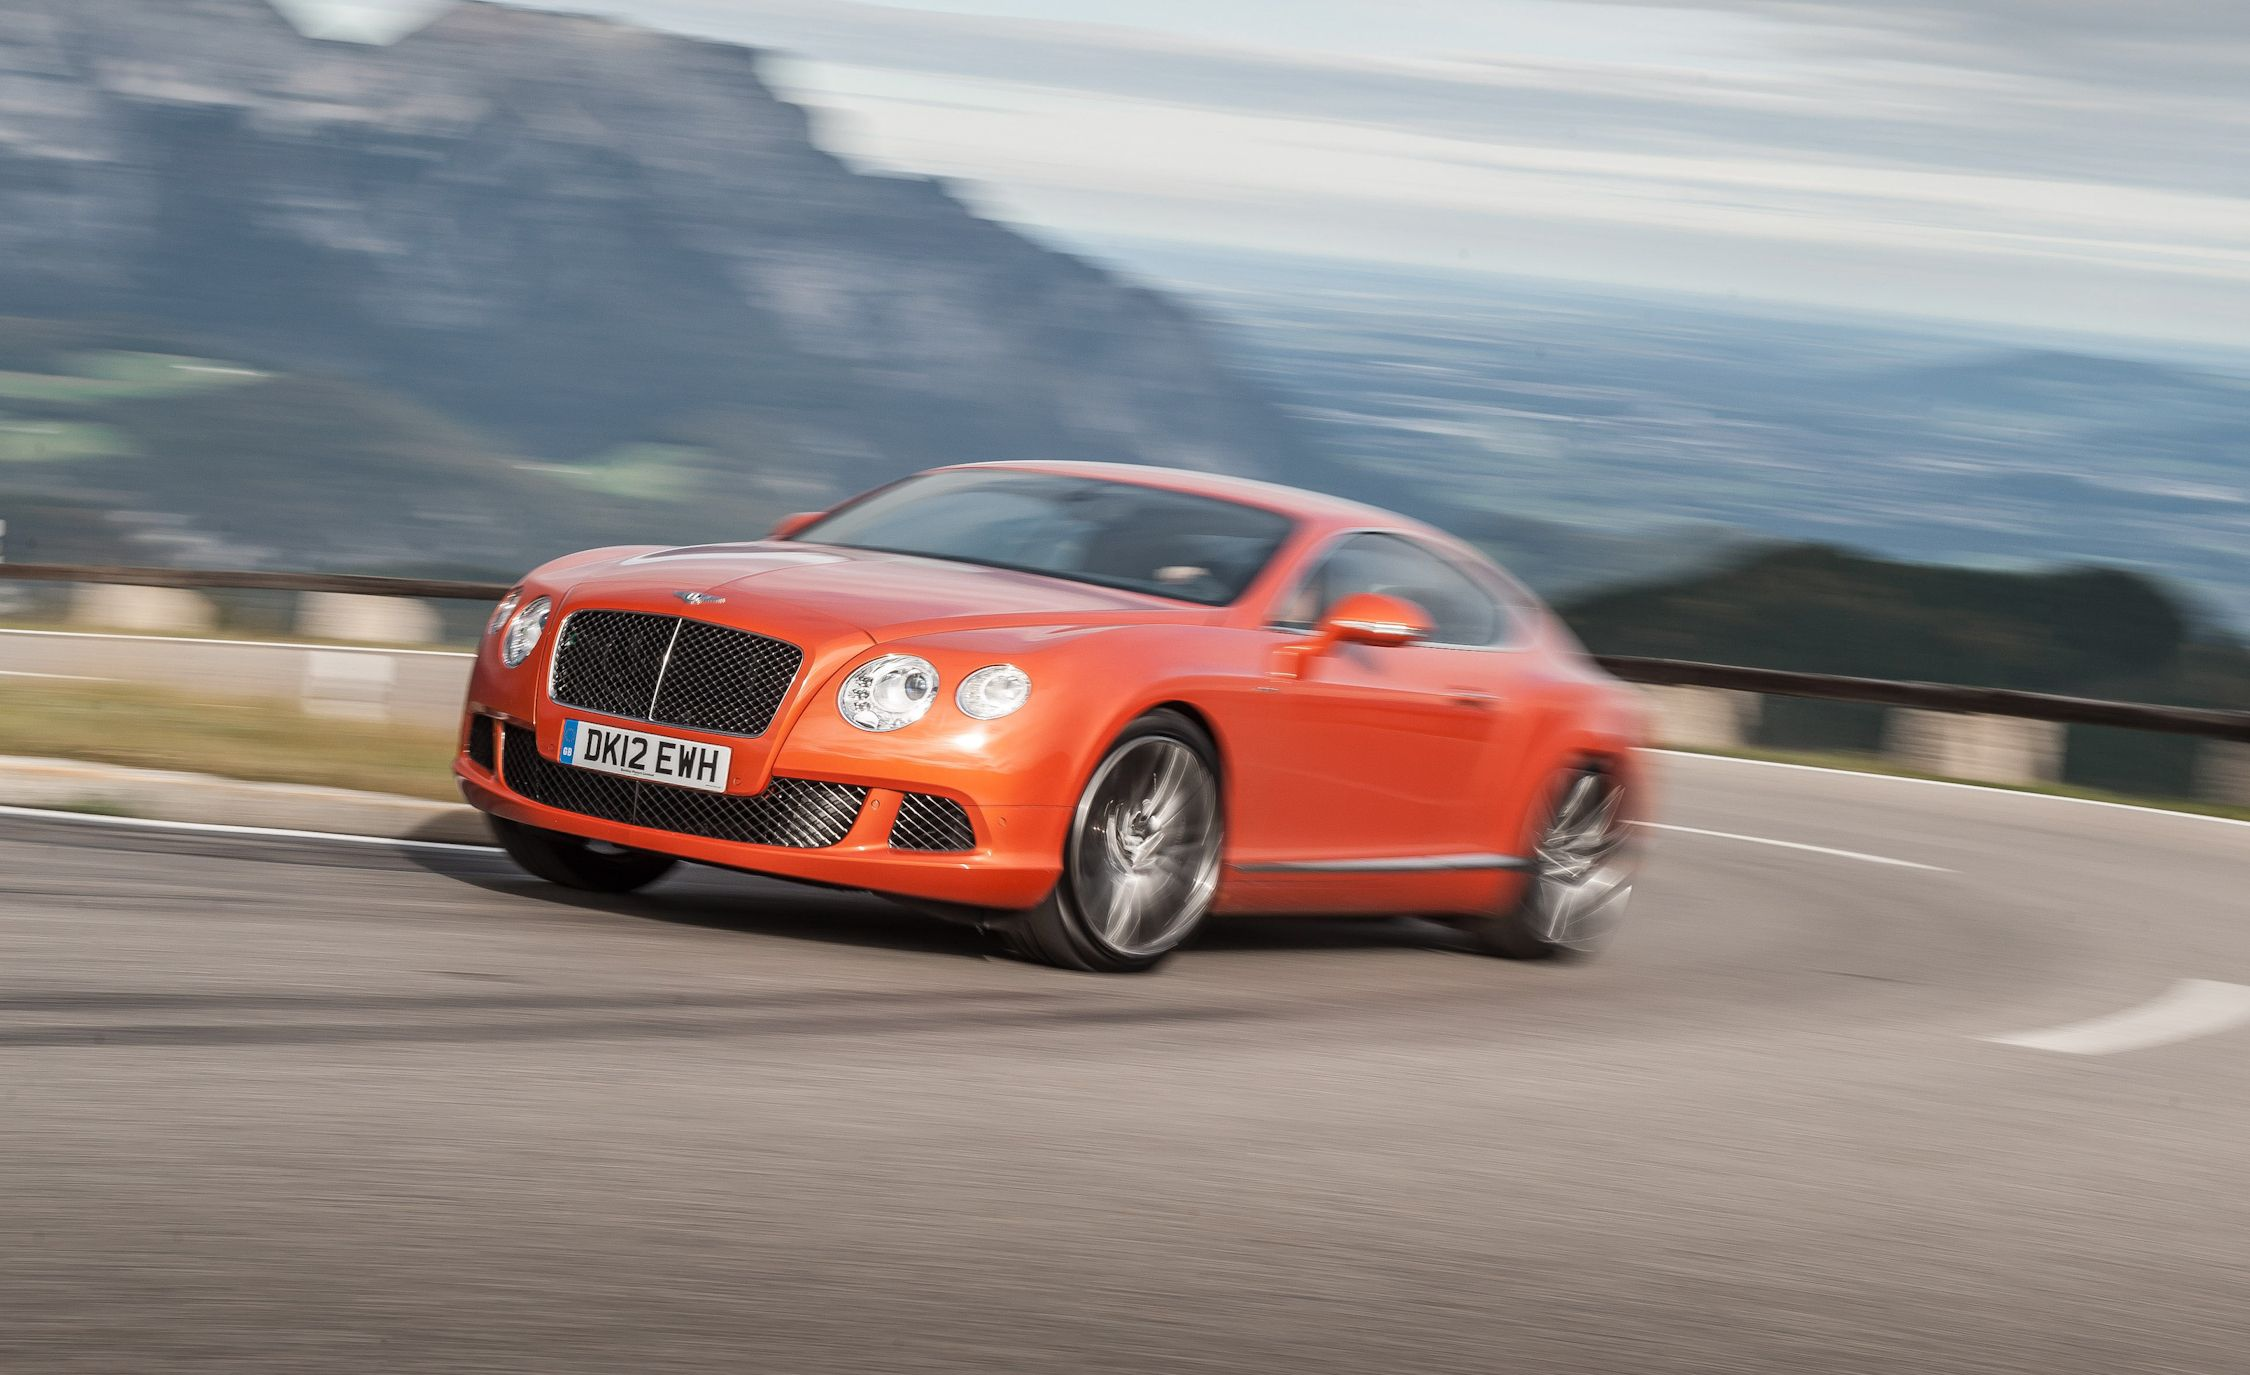 2013 Bentley Continental Gt Speed First Drive 8211 Review 8211 Car And Driver